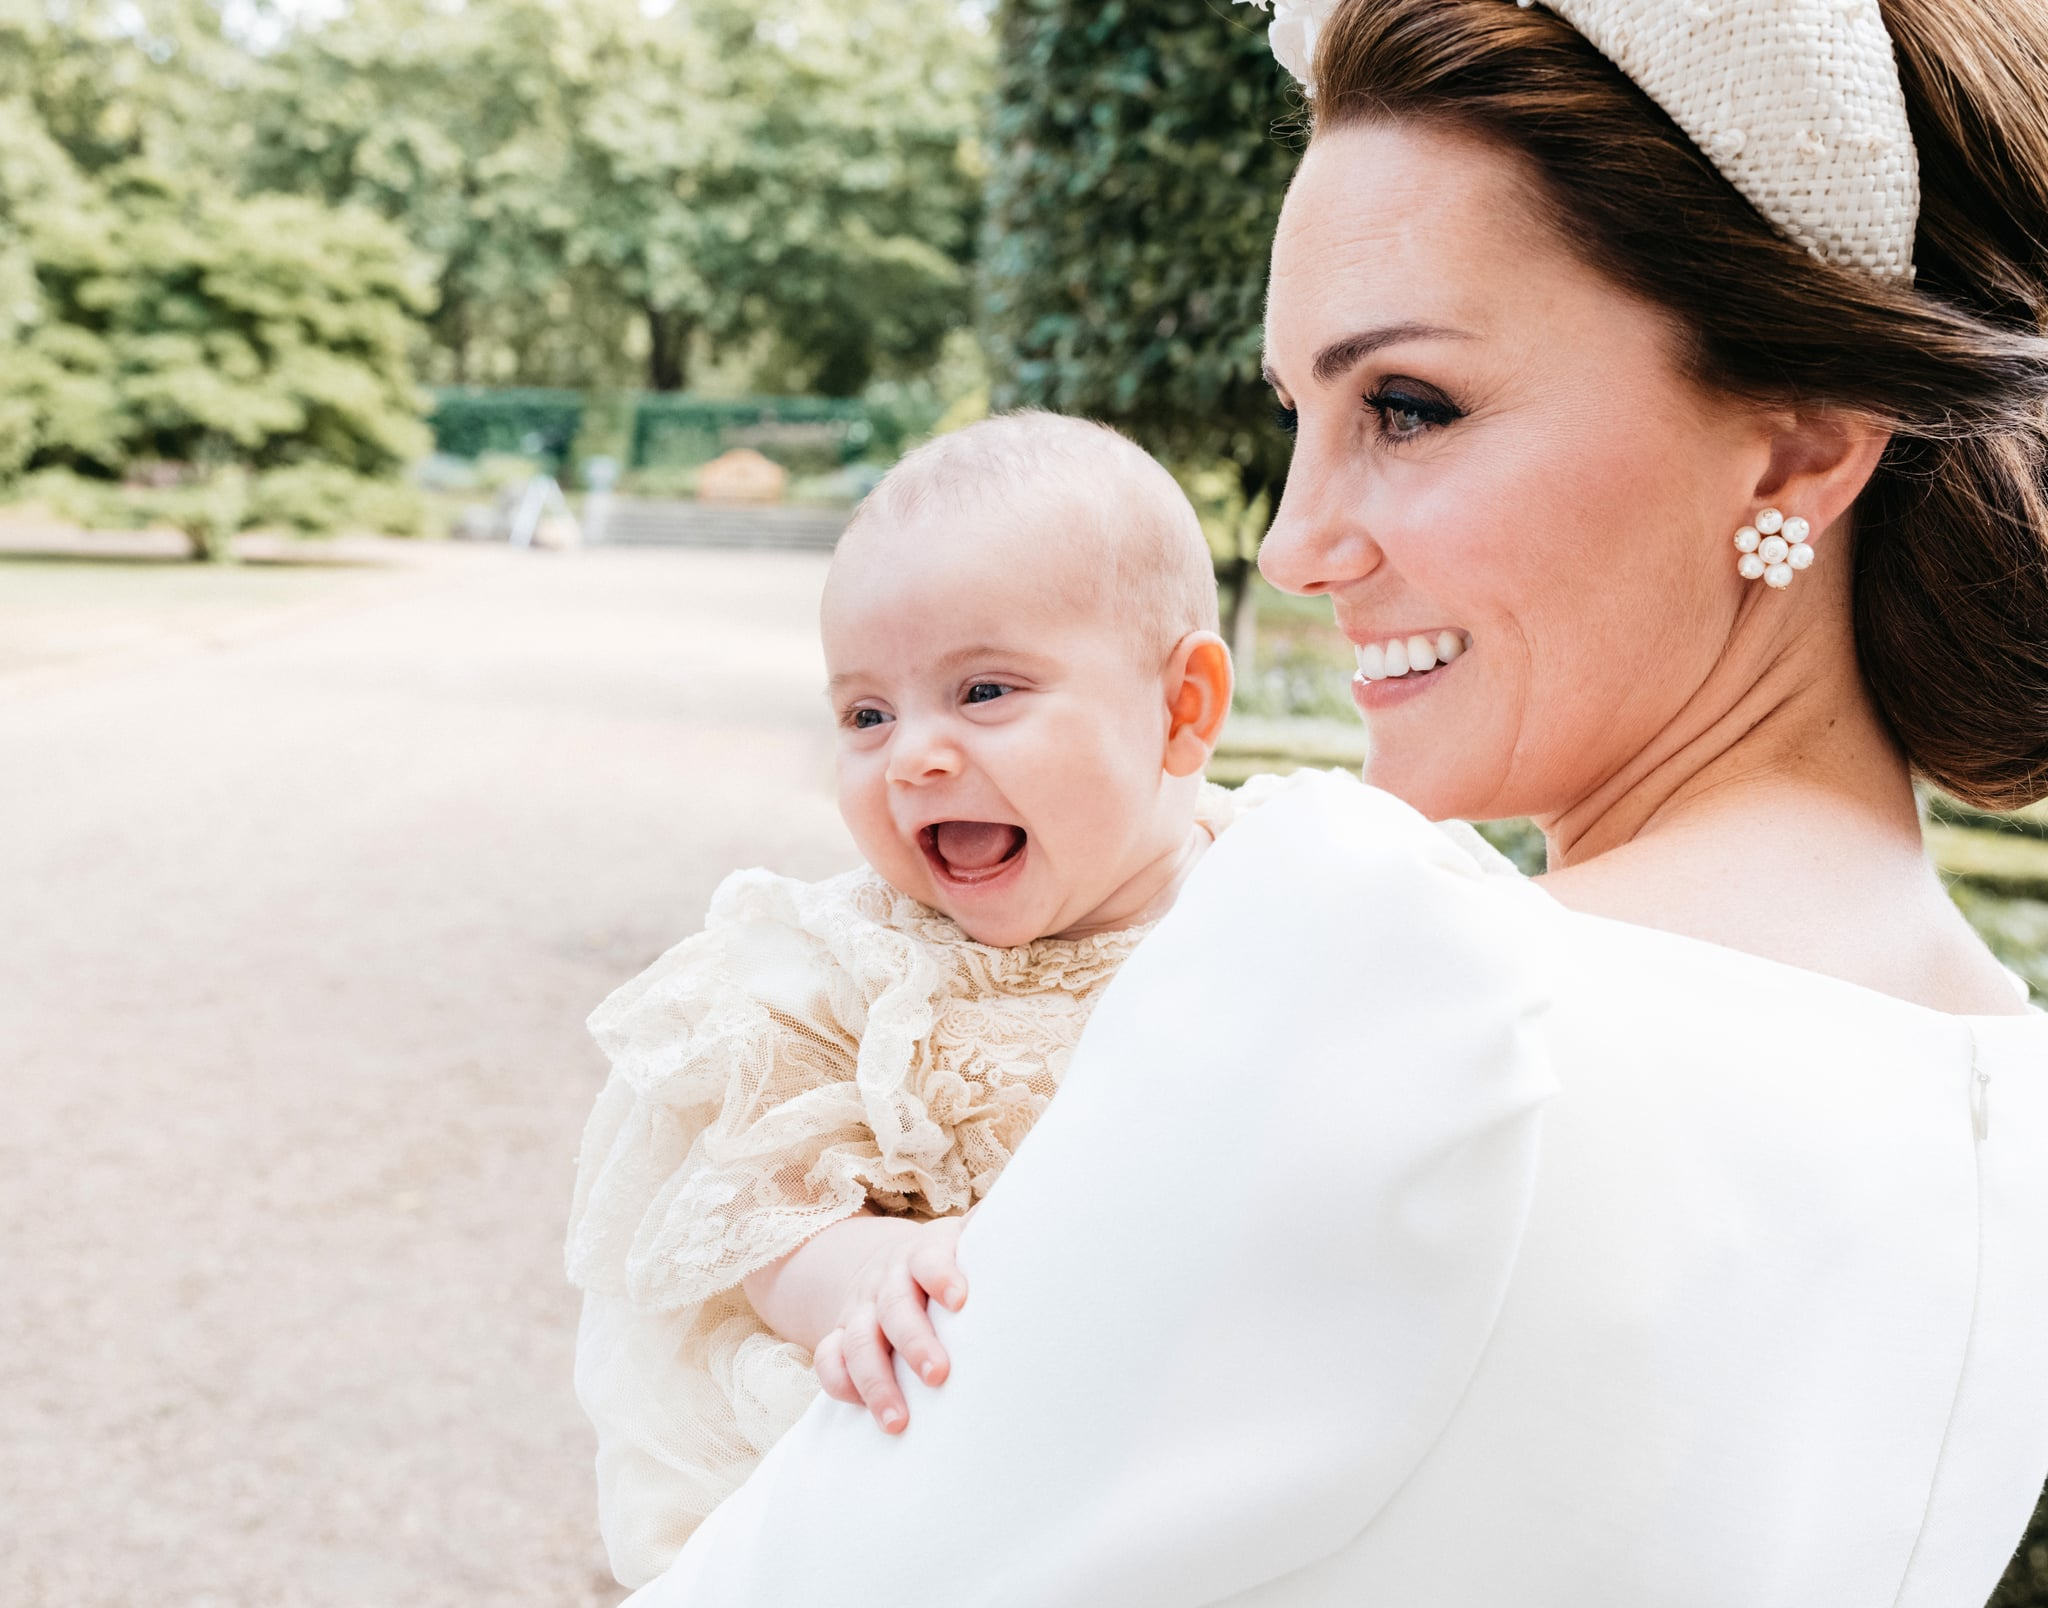 LONDON, ENGLAND - JULY 09: (NO SALES)  In this handout image released by the Duke and Duchess of Cambridge, Catherine, Duchess of Cambridge and Prince Louis pose for an Official Portrait following the christening of Prince Louis taken on the grounds of Clarence House in St James's Palace on July 9, 2018 in London, England. (Photo by CAMERA PRESS/Matt Porteous/The Duke and Duchess of Cambridge via Getty Images)  [NO USE AFTER JULY 29TH 2018.  NO FEE APPLIES.  OBLIGATORY BYLINE:   MATT PORTEOUS/CAMERA PRESS.  FOR USE IN NEWS STORIES RELATING TO THE CHRISTENING OF PRINCE LOUIS OF CAMBRIDGE ONLY.  NO USE IN CALENDARS, SOUVENIR ISSUES.  NO MERHANDISING, PRINT SALES OR COMMERCIAL USE. MAGAZINE/SUPPLEMENT USE MUST BE APPROVED VIA CAMERA PRESS AGENCY AND KENSINGTON PALACE.  IMAGE MUST NOT BE CROPPED, MANIPULATED OR ALTERED IN ANY WAY.  IMAGES MUST BE REMOVED FROM ANY DIGITAL ARCHIVE ON JULY 29TH 2018.] PAID COMMERCIAL IMAGE FOR PUBLICITY PURPOSES - FREE FOR EDITORIAL USE.